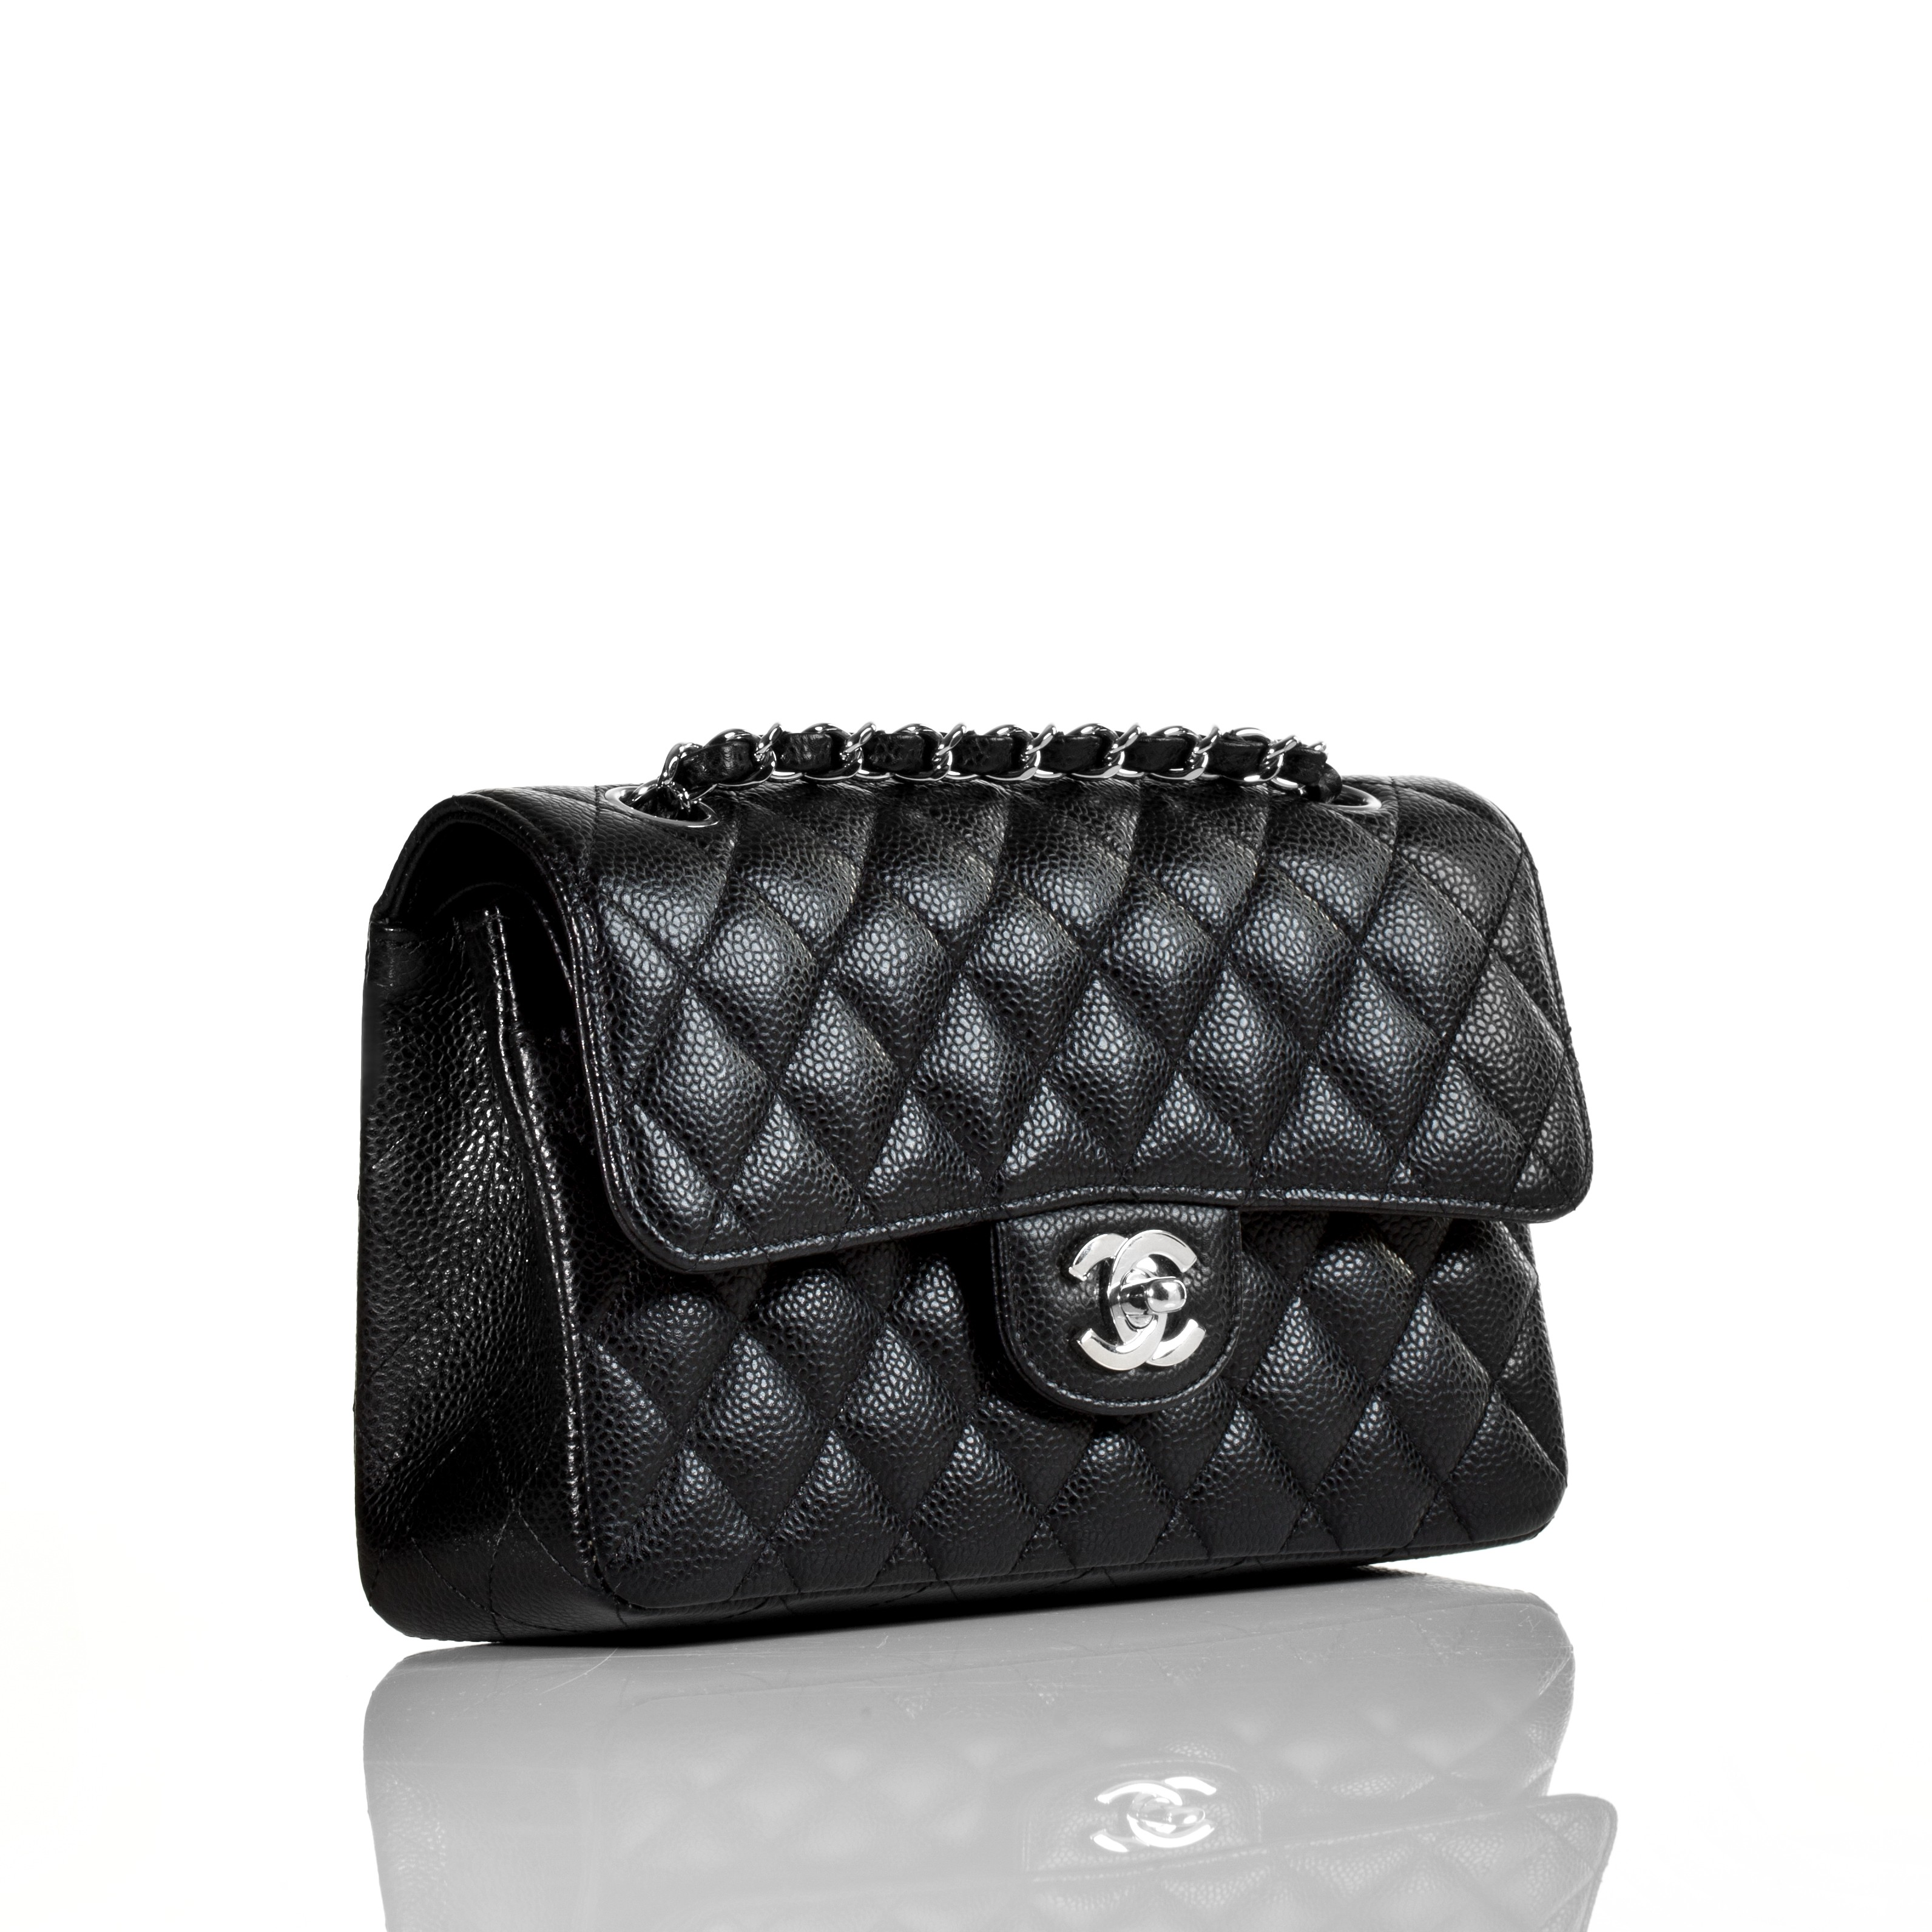 chanel bags classic. Chanel Classic Small Caviar 2.55 Flap - Bag Sold Out In Stores | Portero Luxury Bags E